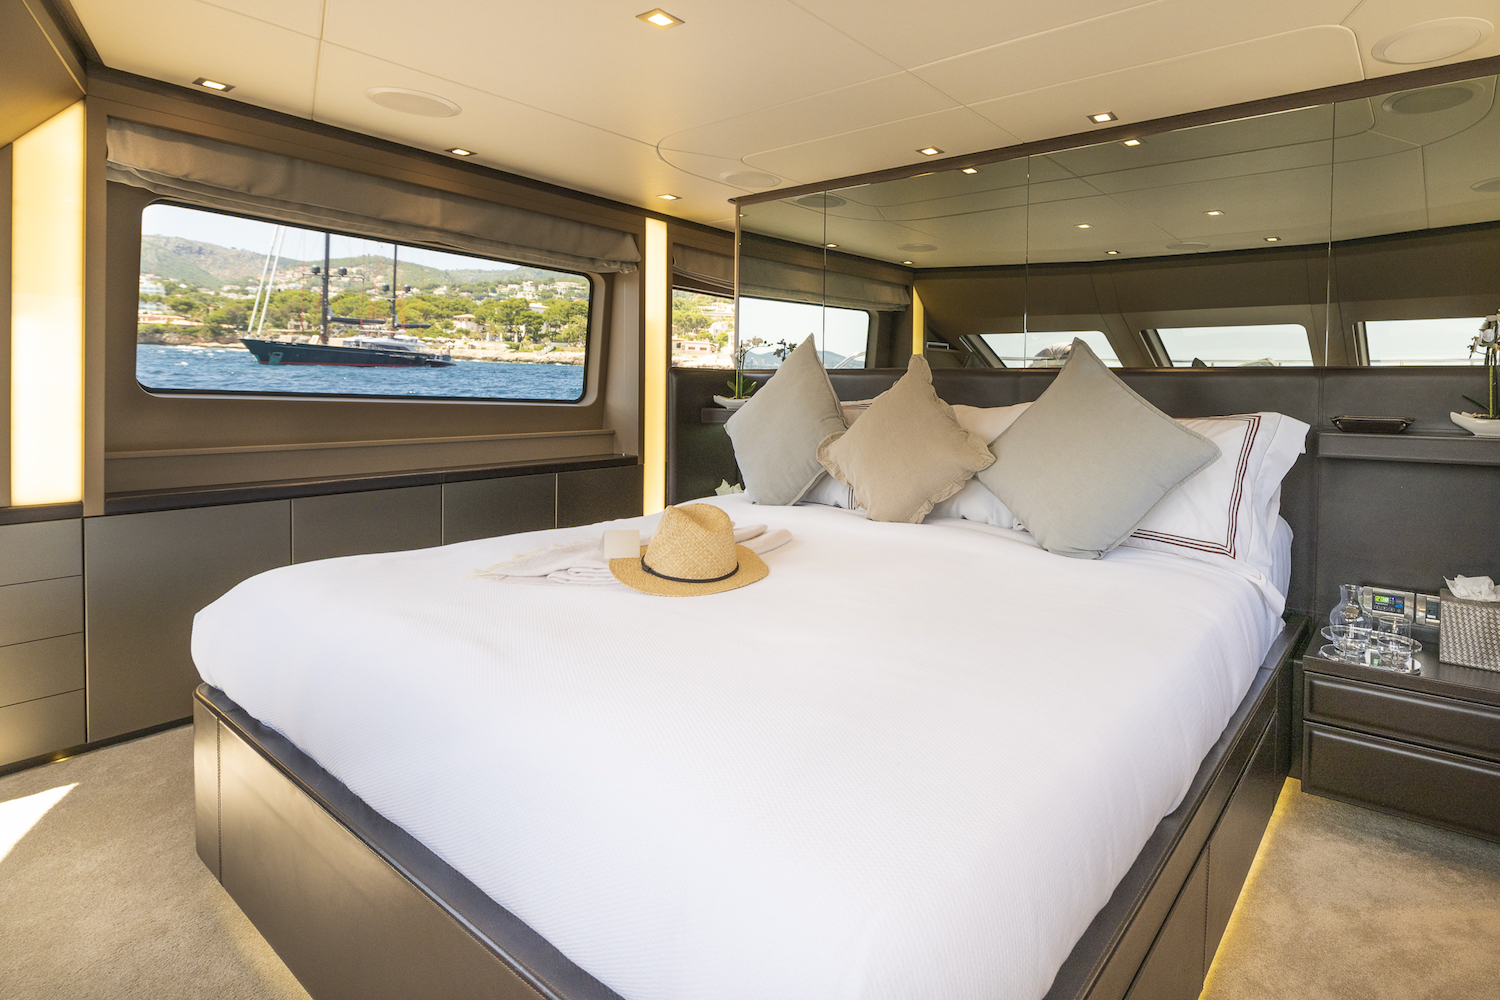 Owner Suite On Main Deck